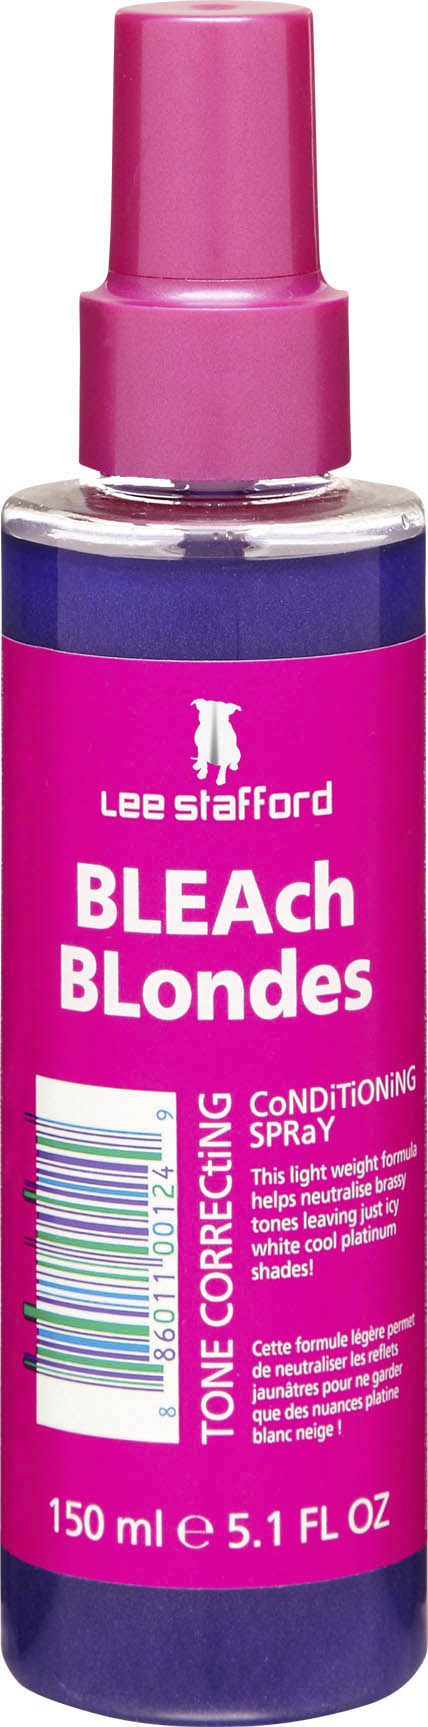 Lee Stafford - Bleach Blondes Tone Correcting Leave-in-conditioner 150 ml